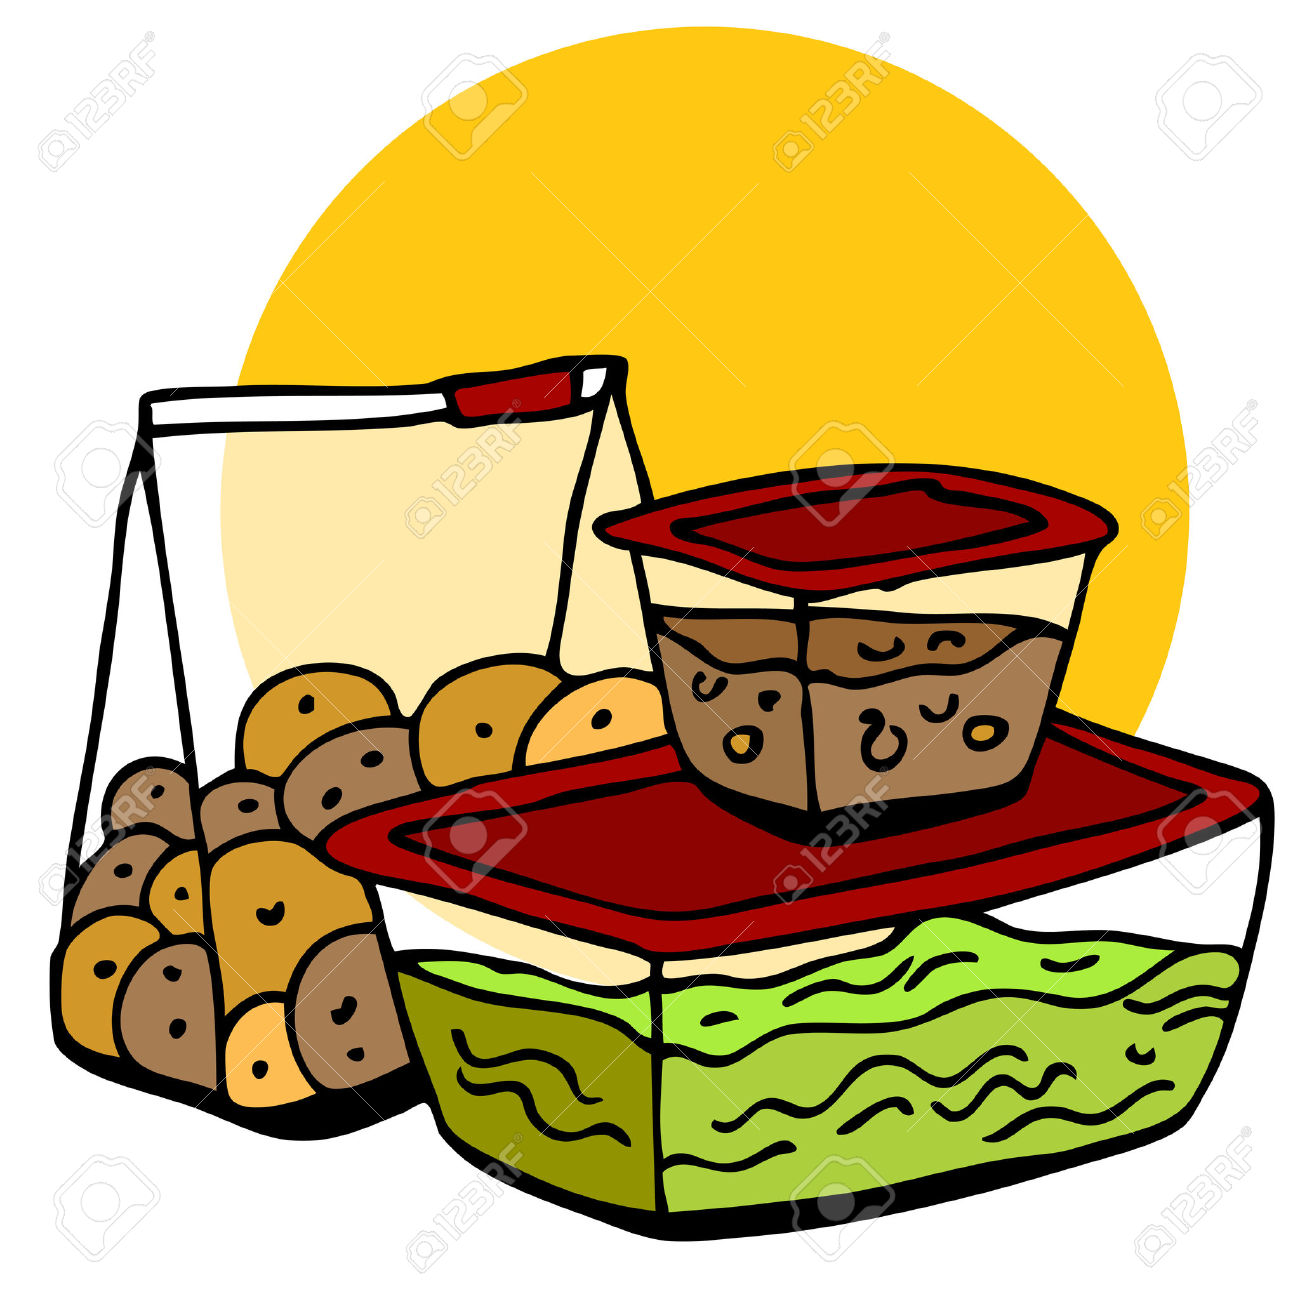 Plastic food storage containers clipart.